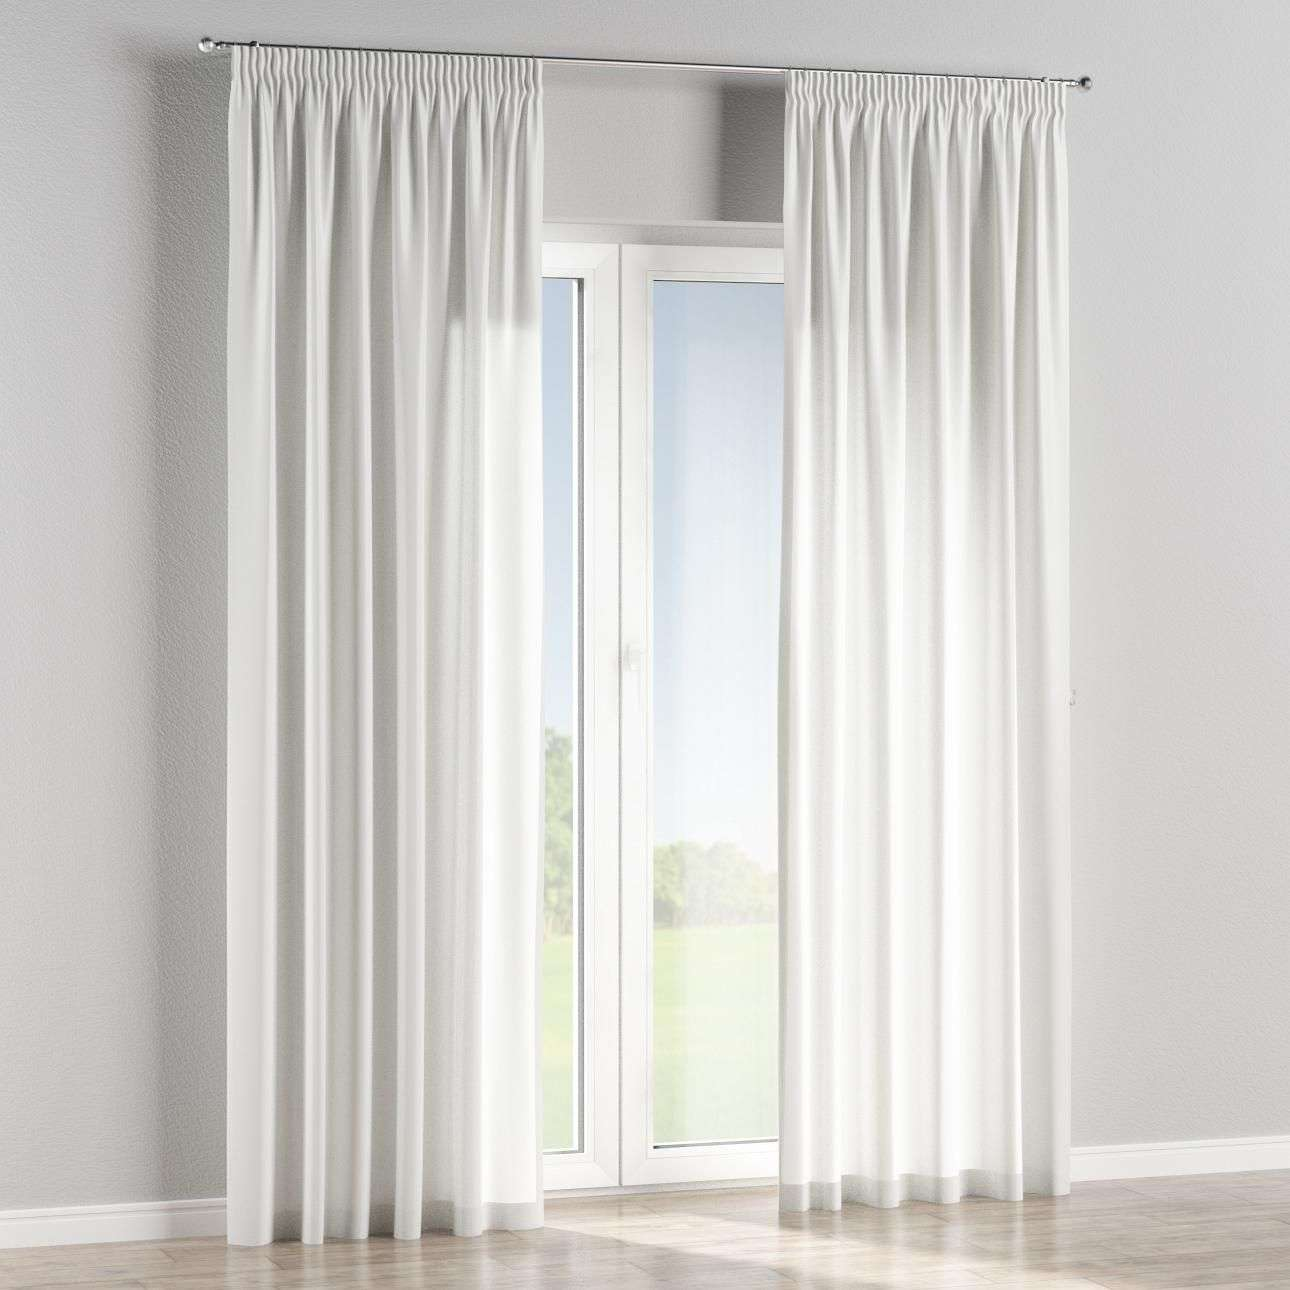 Pencil pleat curtains in collection SALE, fabric: 139-93